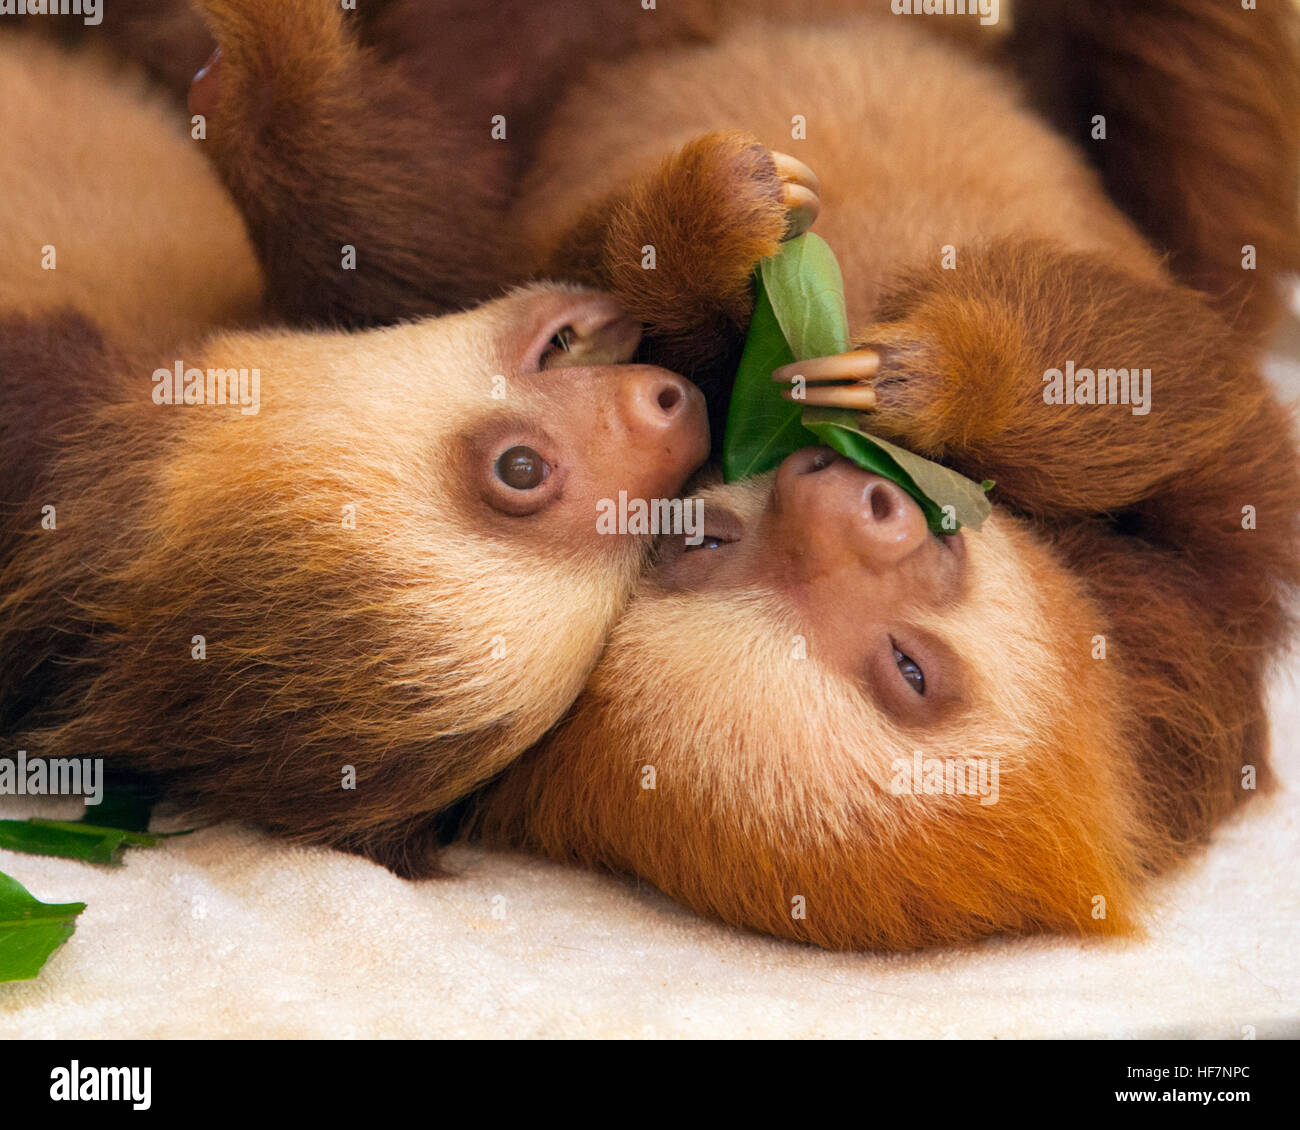 Baby orphaned Hoffmann's Two-toed Sloths (Choloepus hoffmanni) feeding on leaves at the Sloth Sanctuary Stock Photo